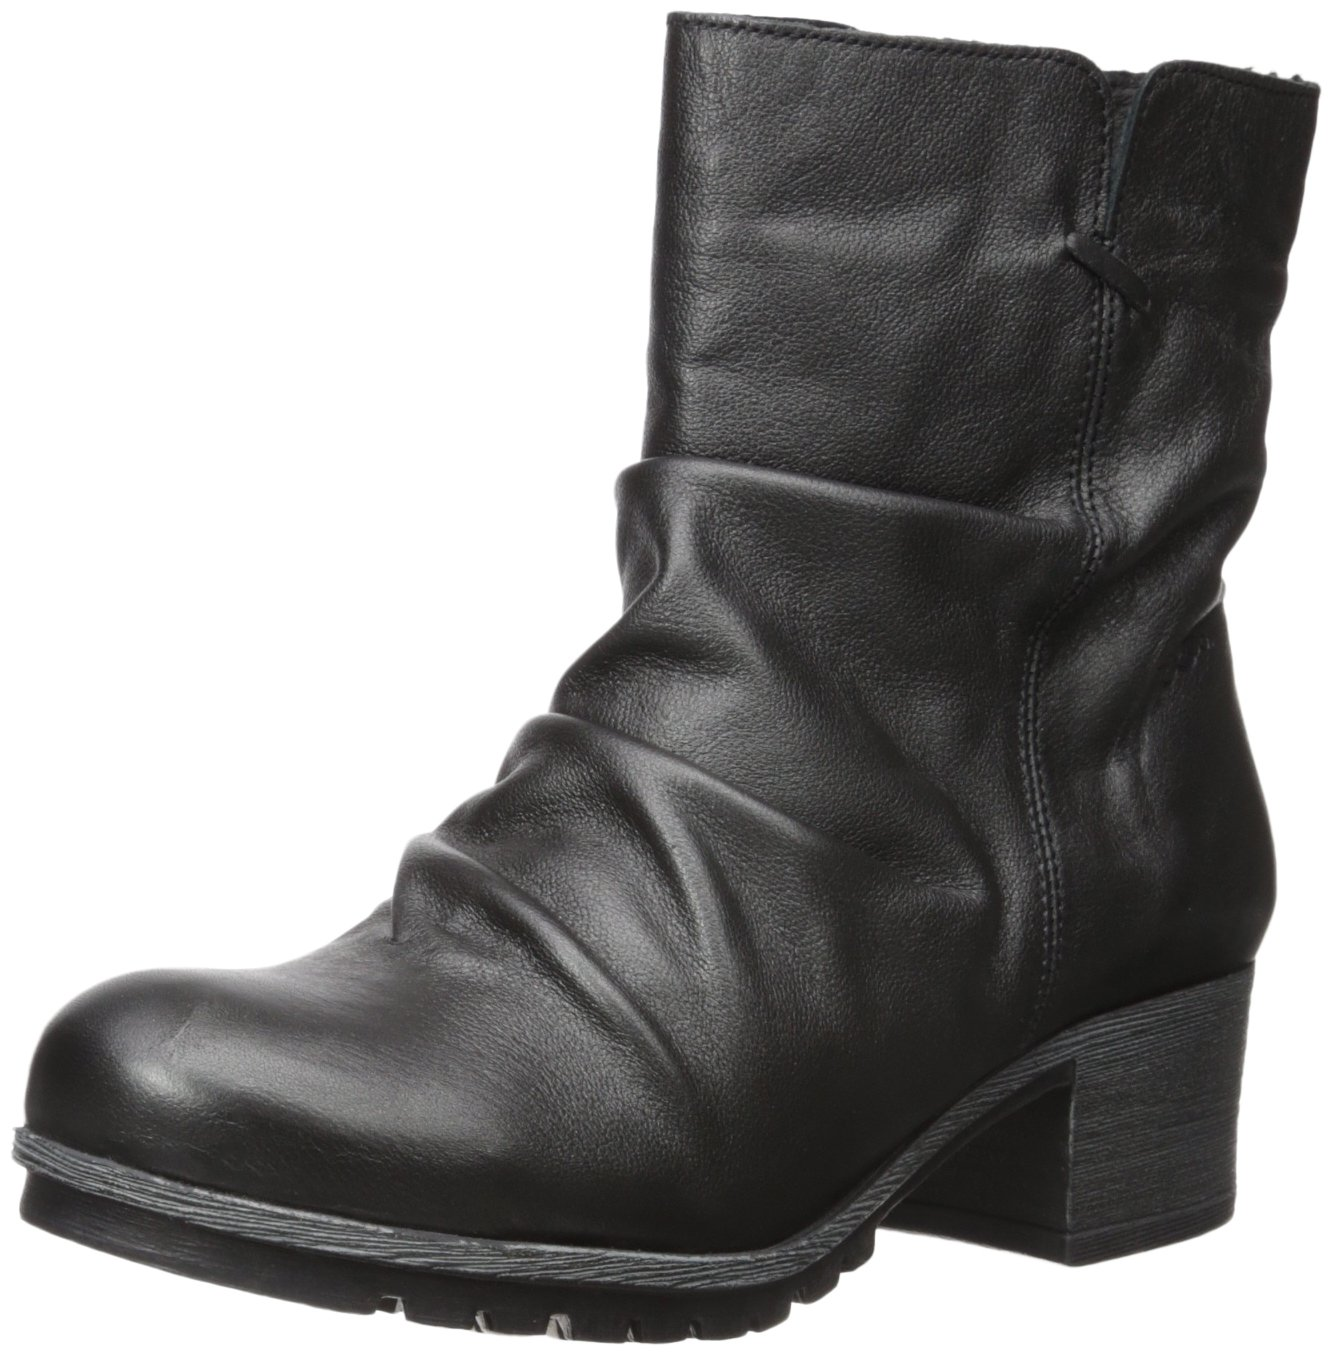 Bos. & Co.. Women's Madrid Boot B01DDOMEPI 40 EU/9-9.5 M US|Pewter Miami Leather